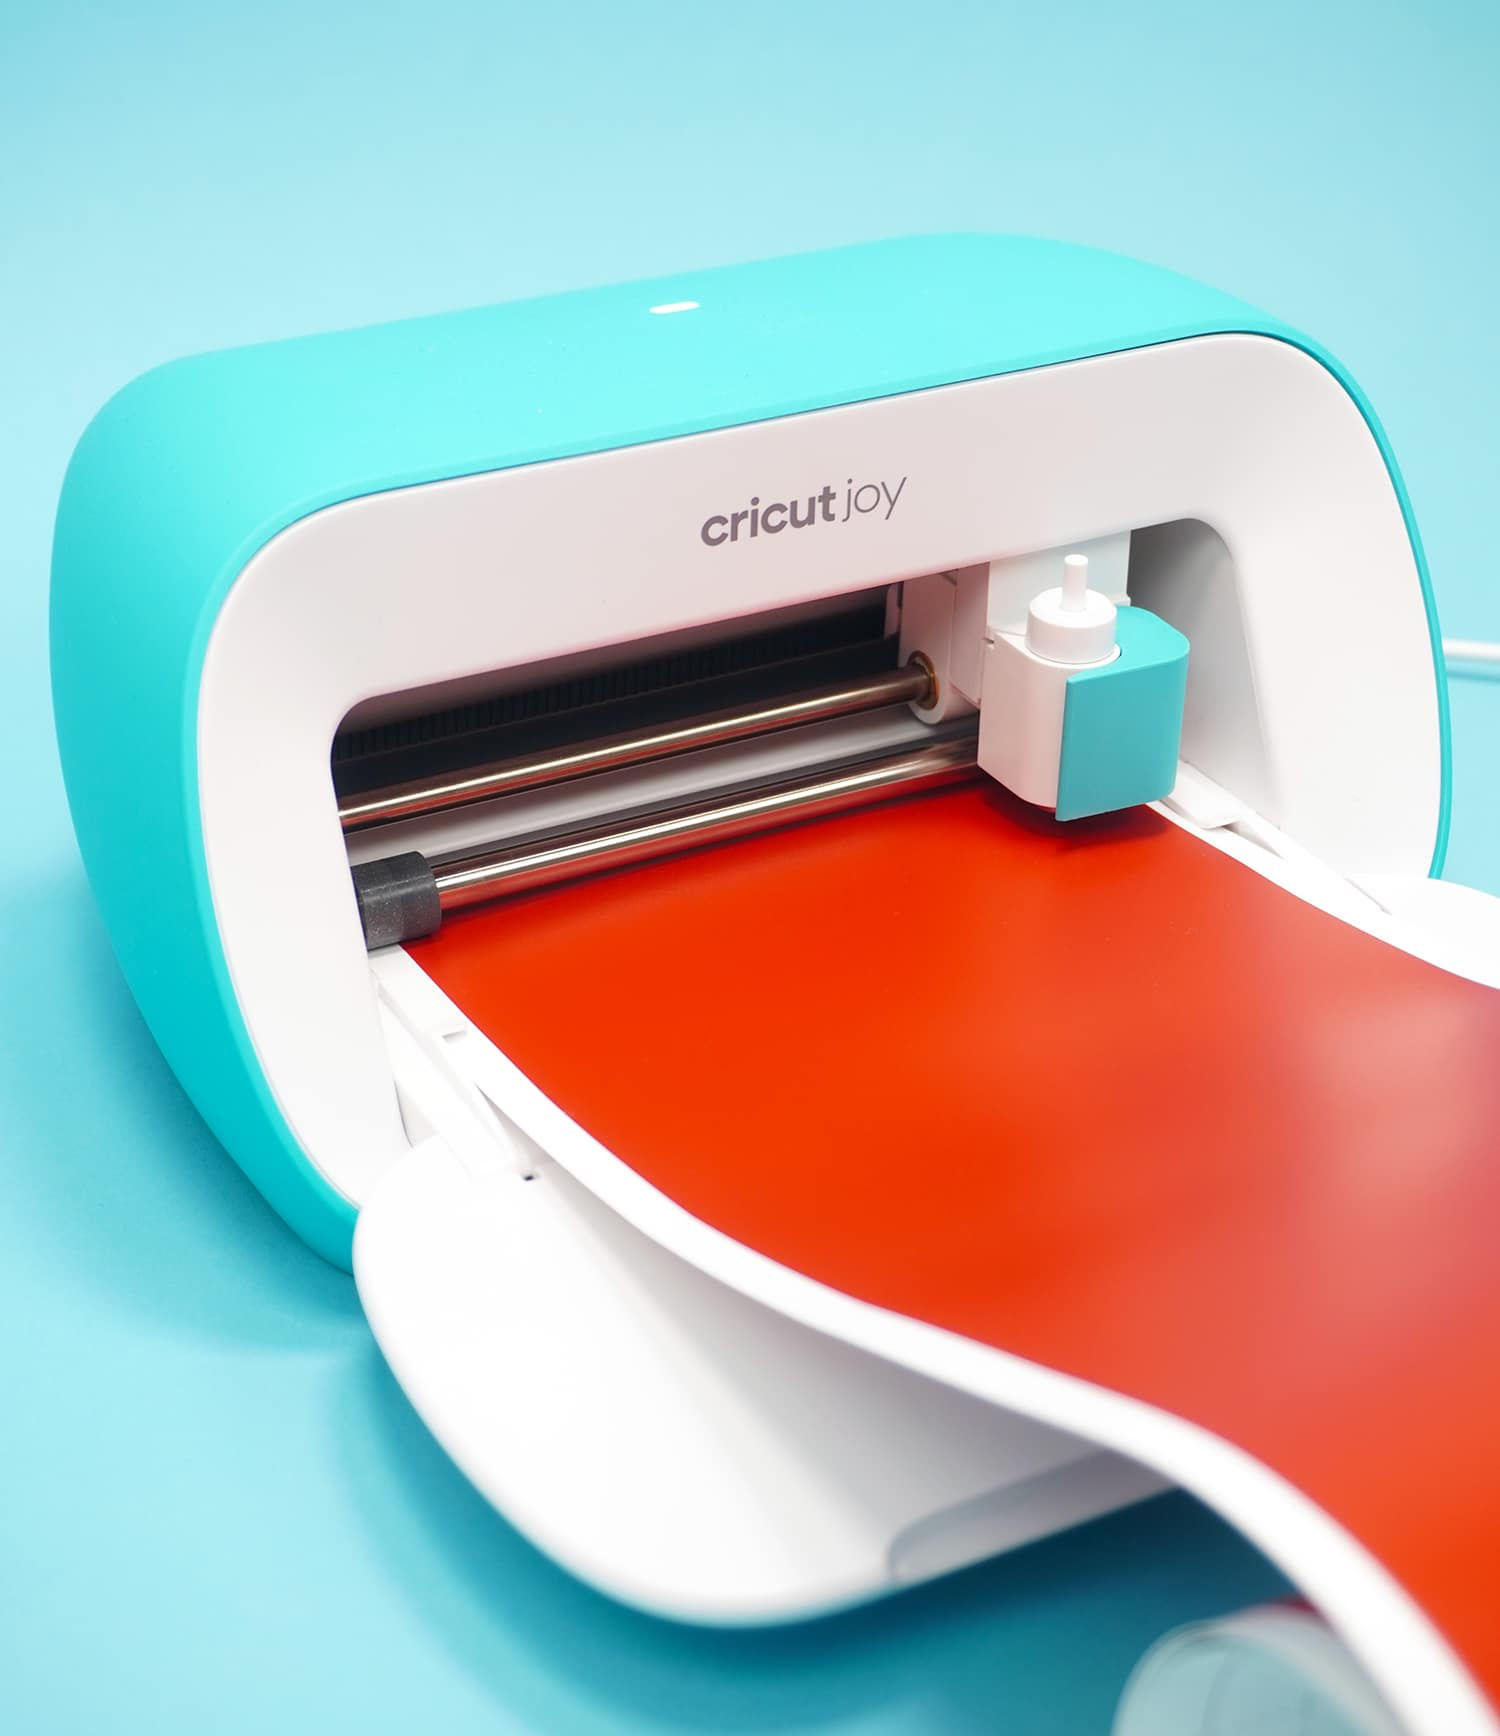 Cricut Joy machine loaded with red Smart Vinyl